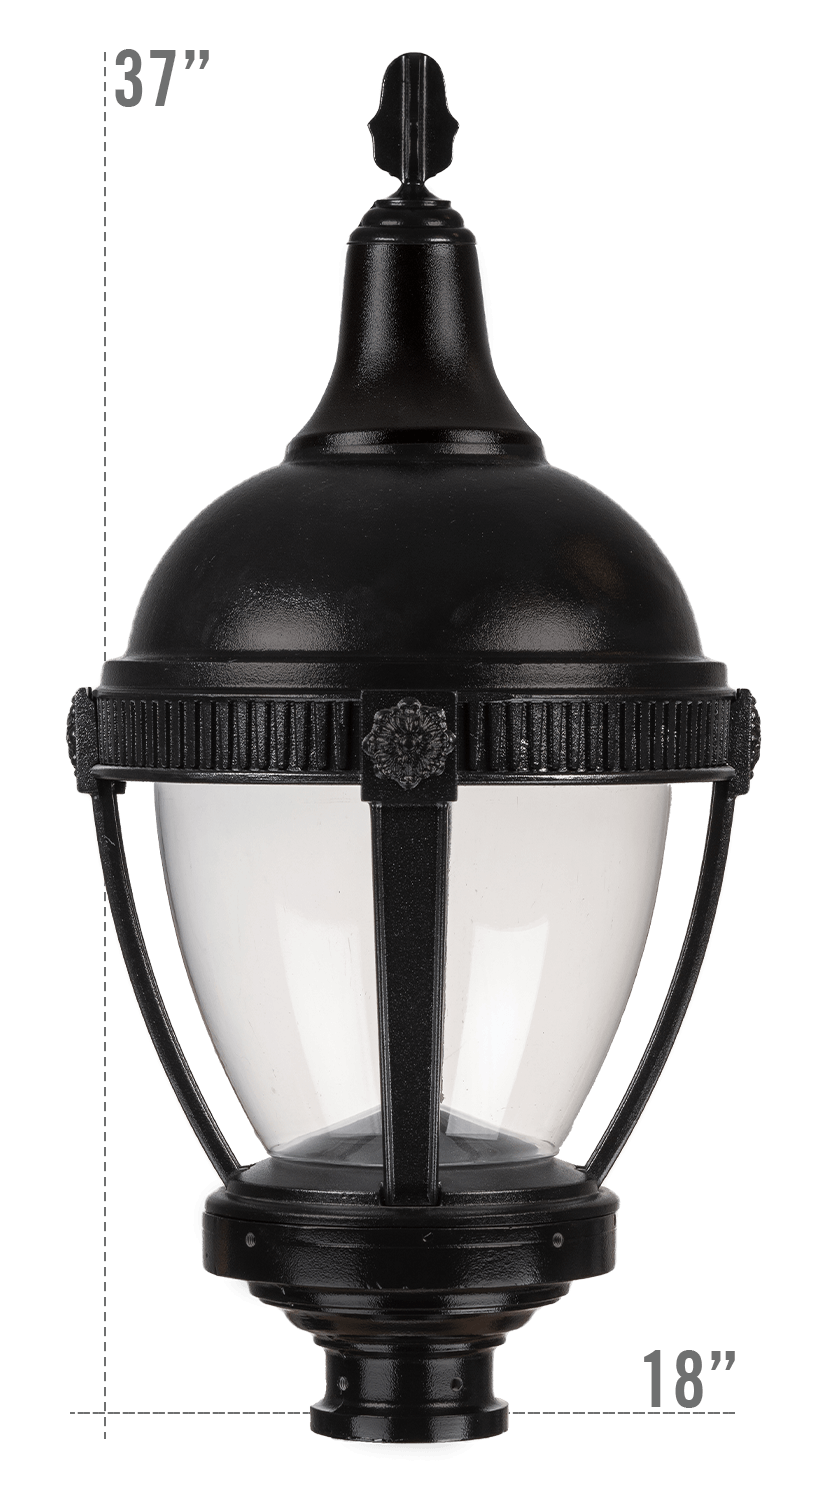 THE ROUND ROOF AUGUSTA LED LUMINAIRE WITH DUNMORE FITTER CLEAR GLOBE